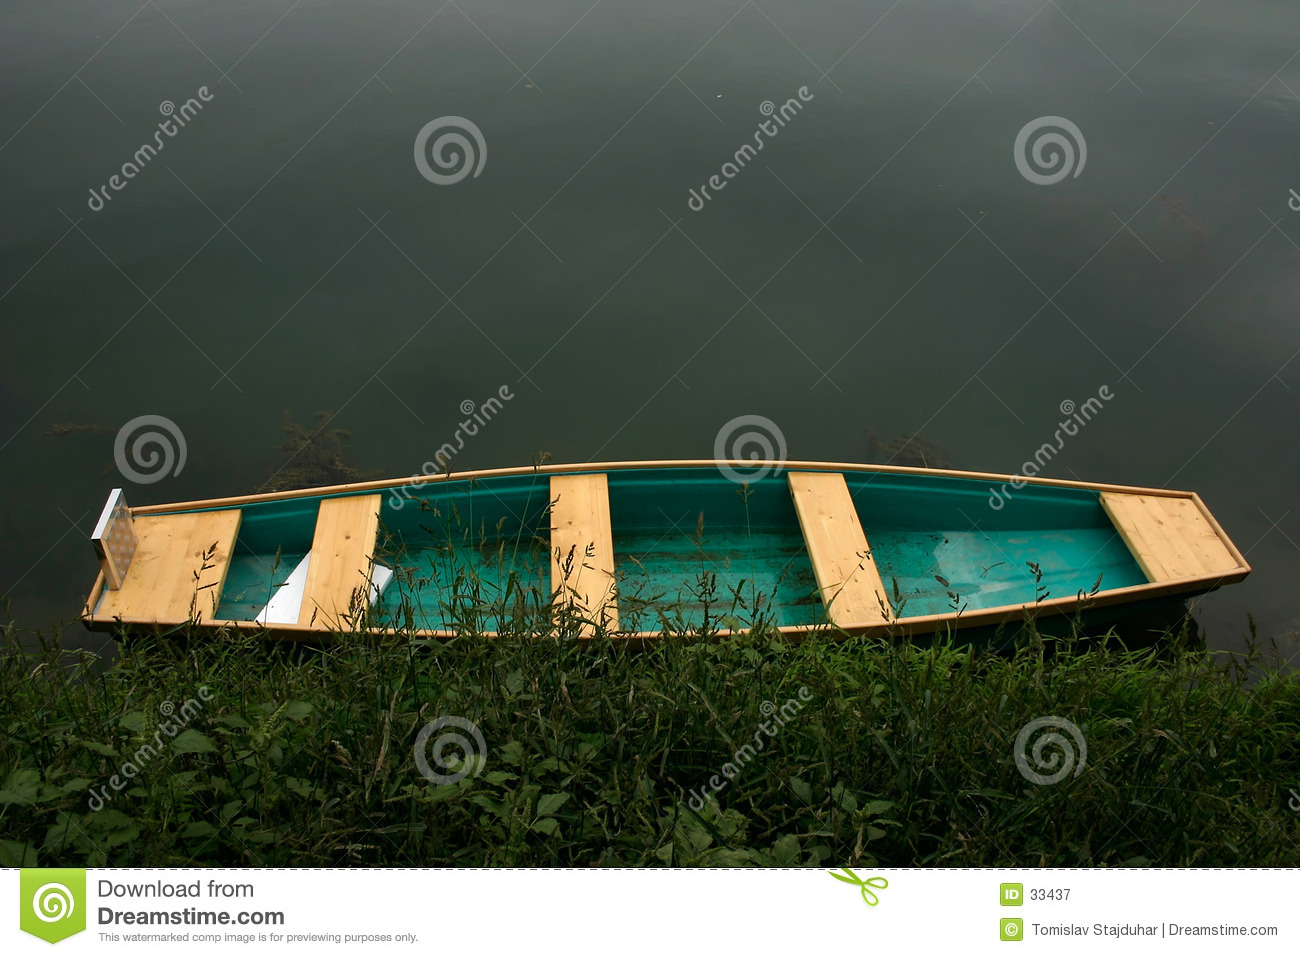 Colorful boat by the water